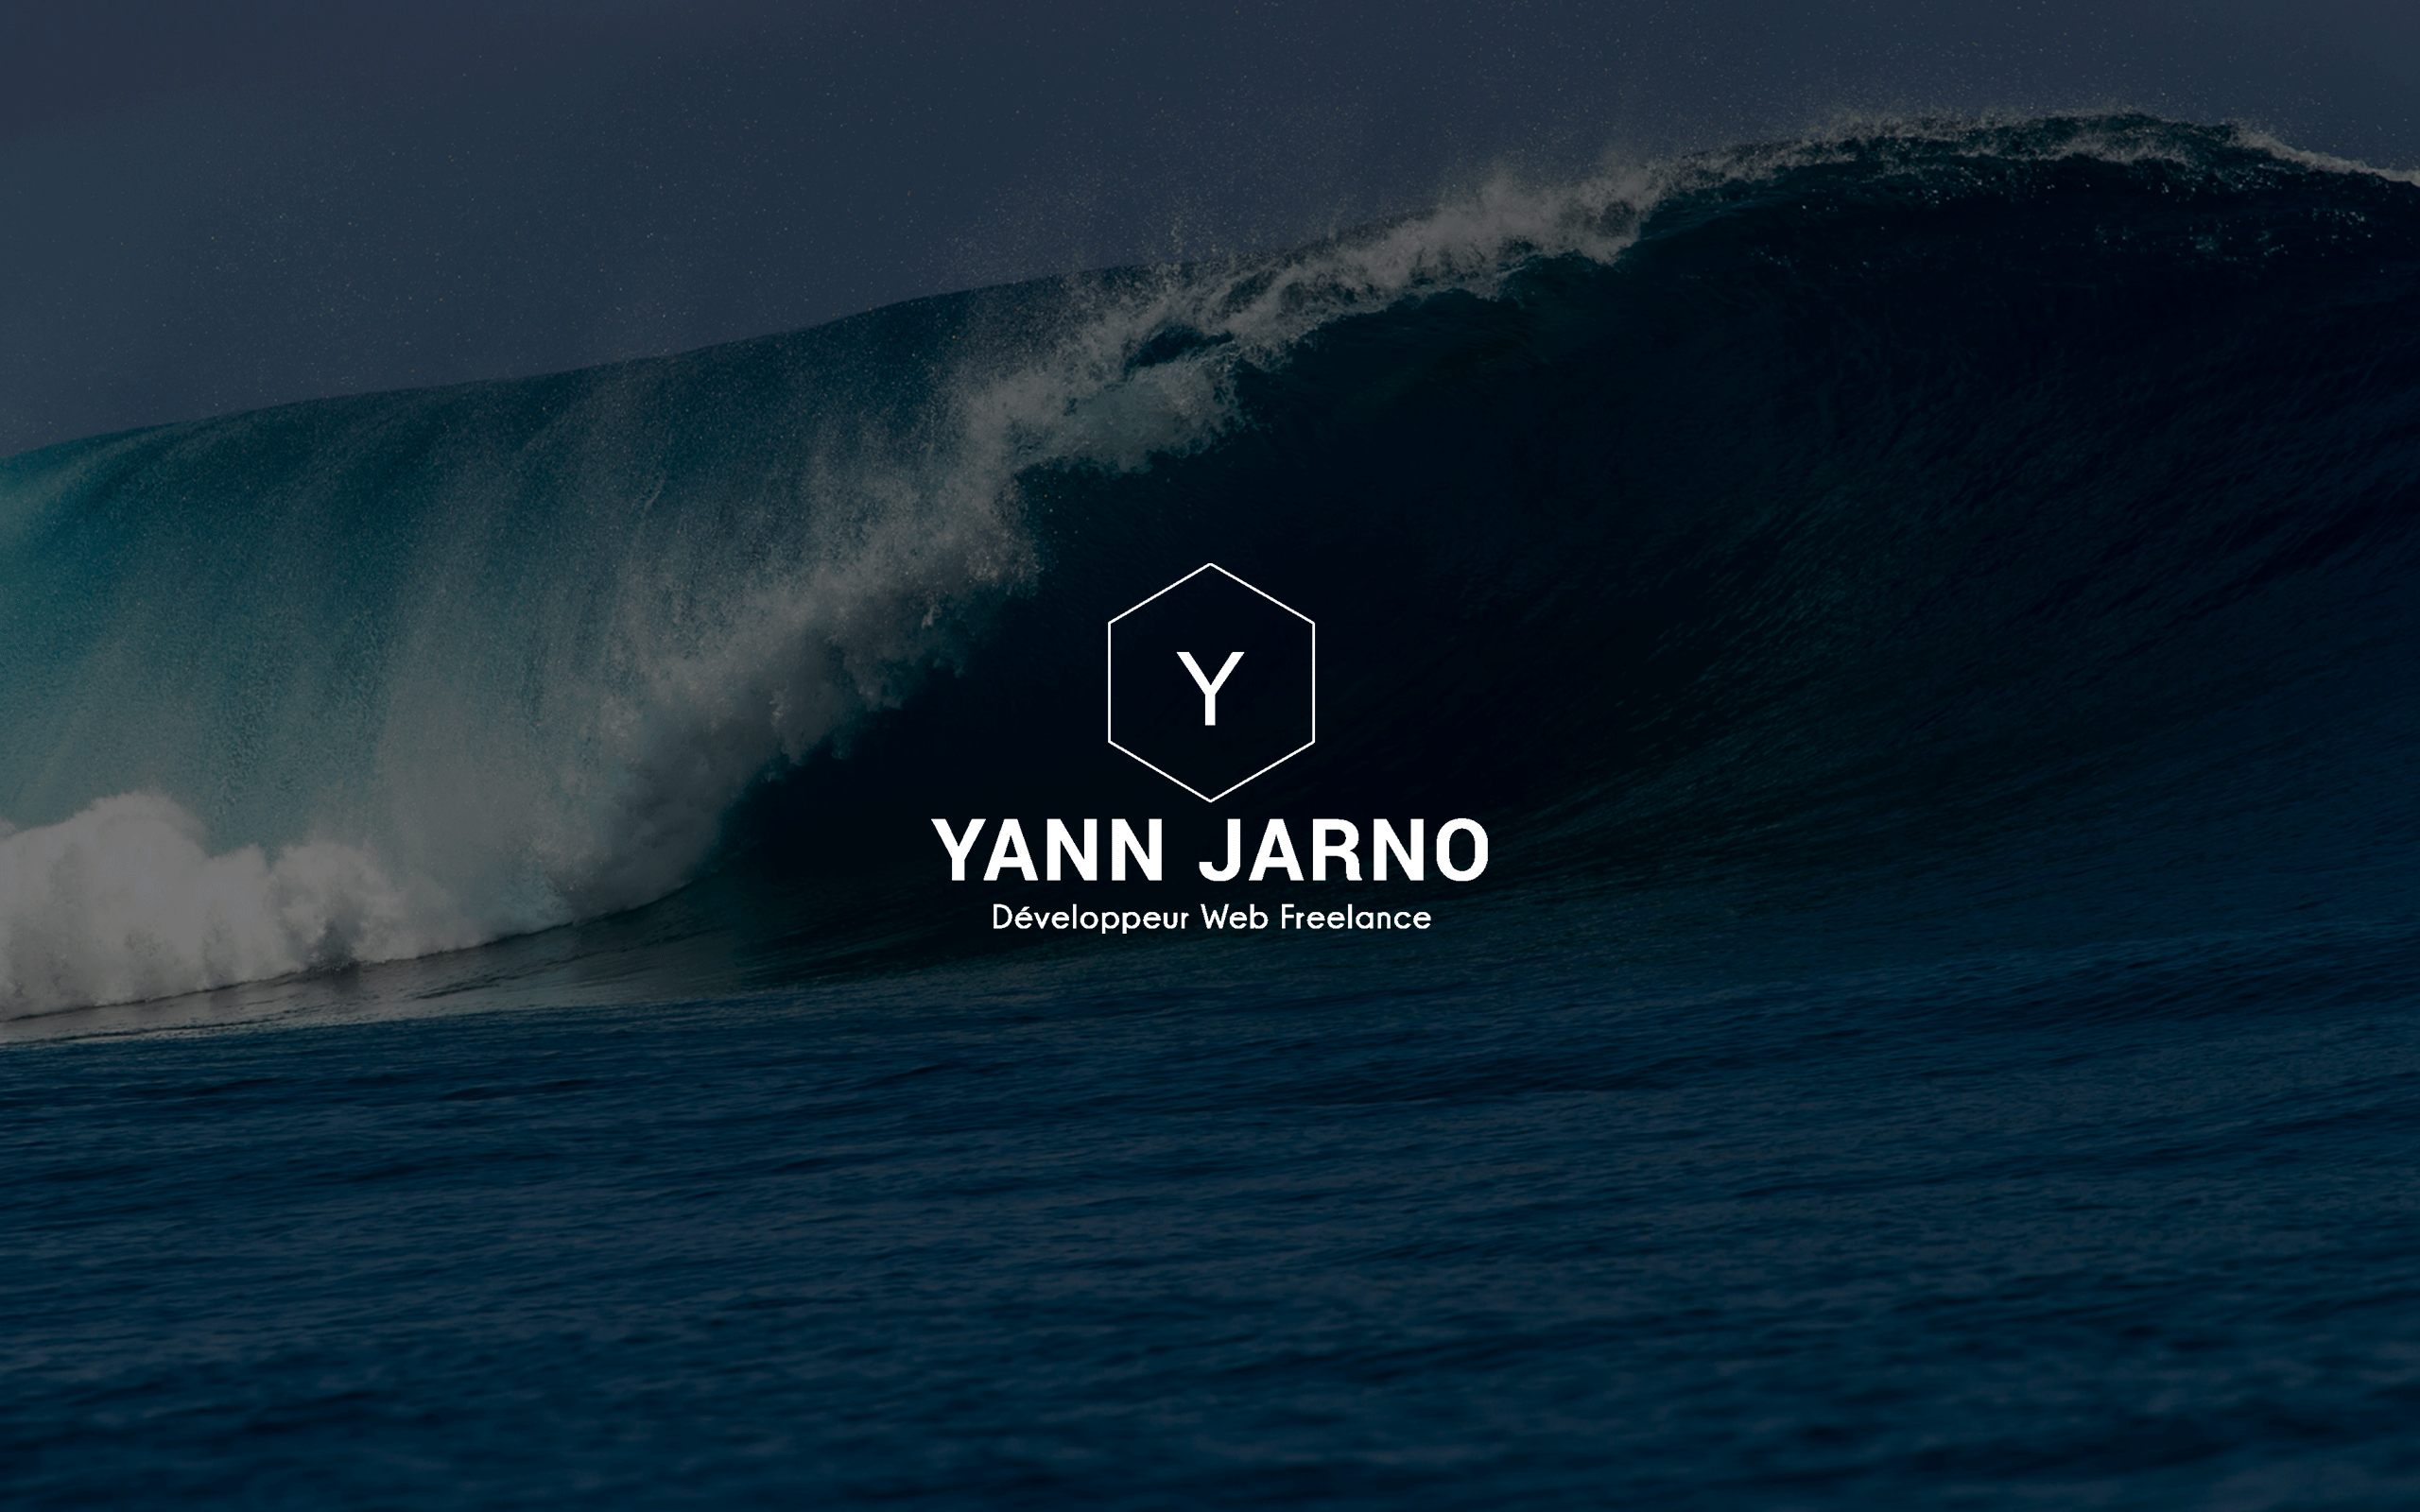 yann-jarno-background-1